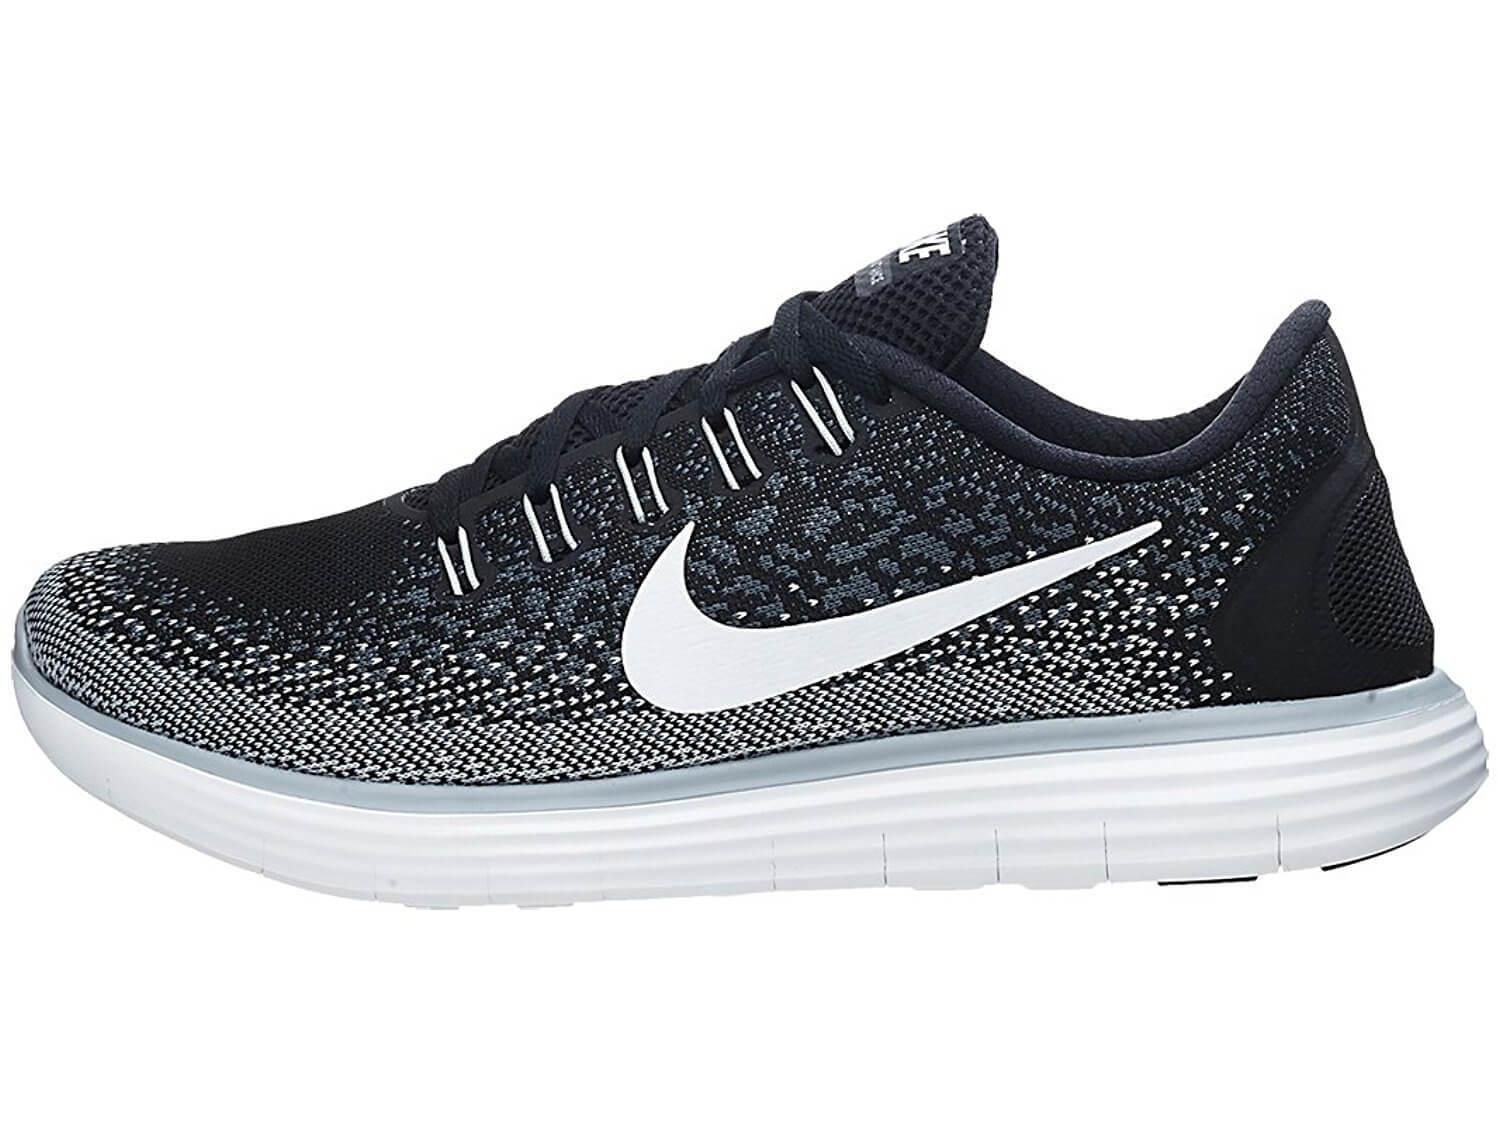 new product 4d5bf 0da8e ... As is custom for Nike, the Free RN Distance is stylish and comes in many